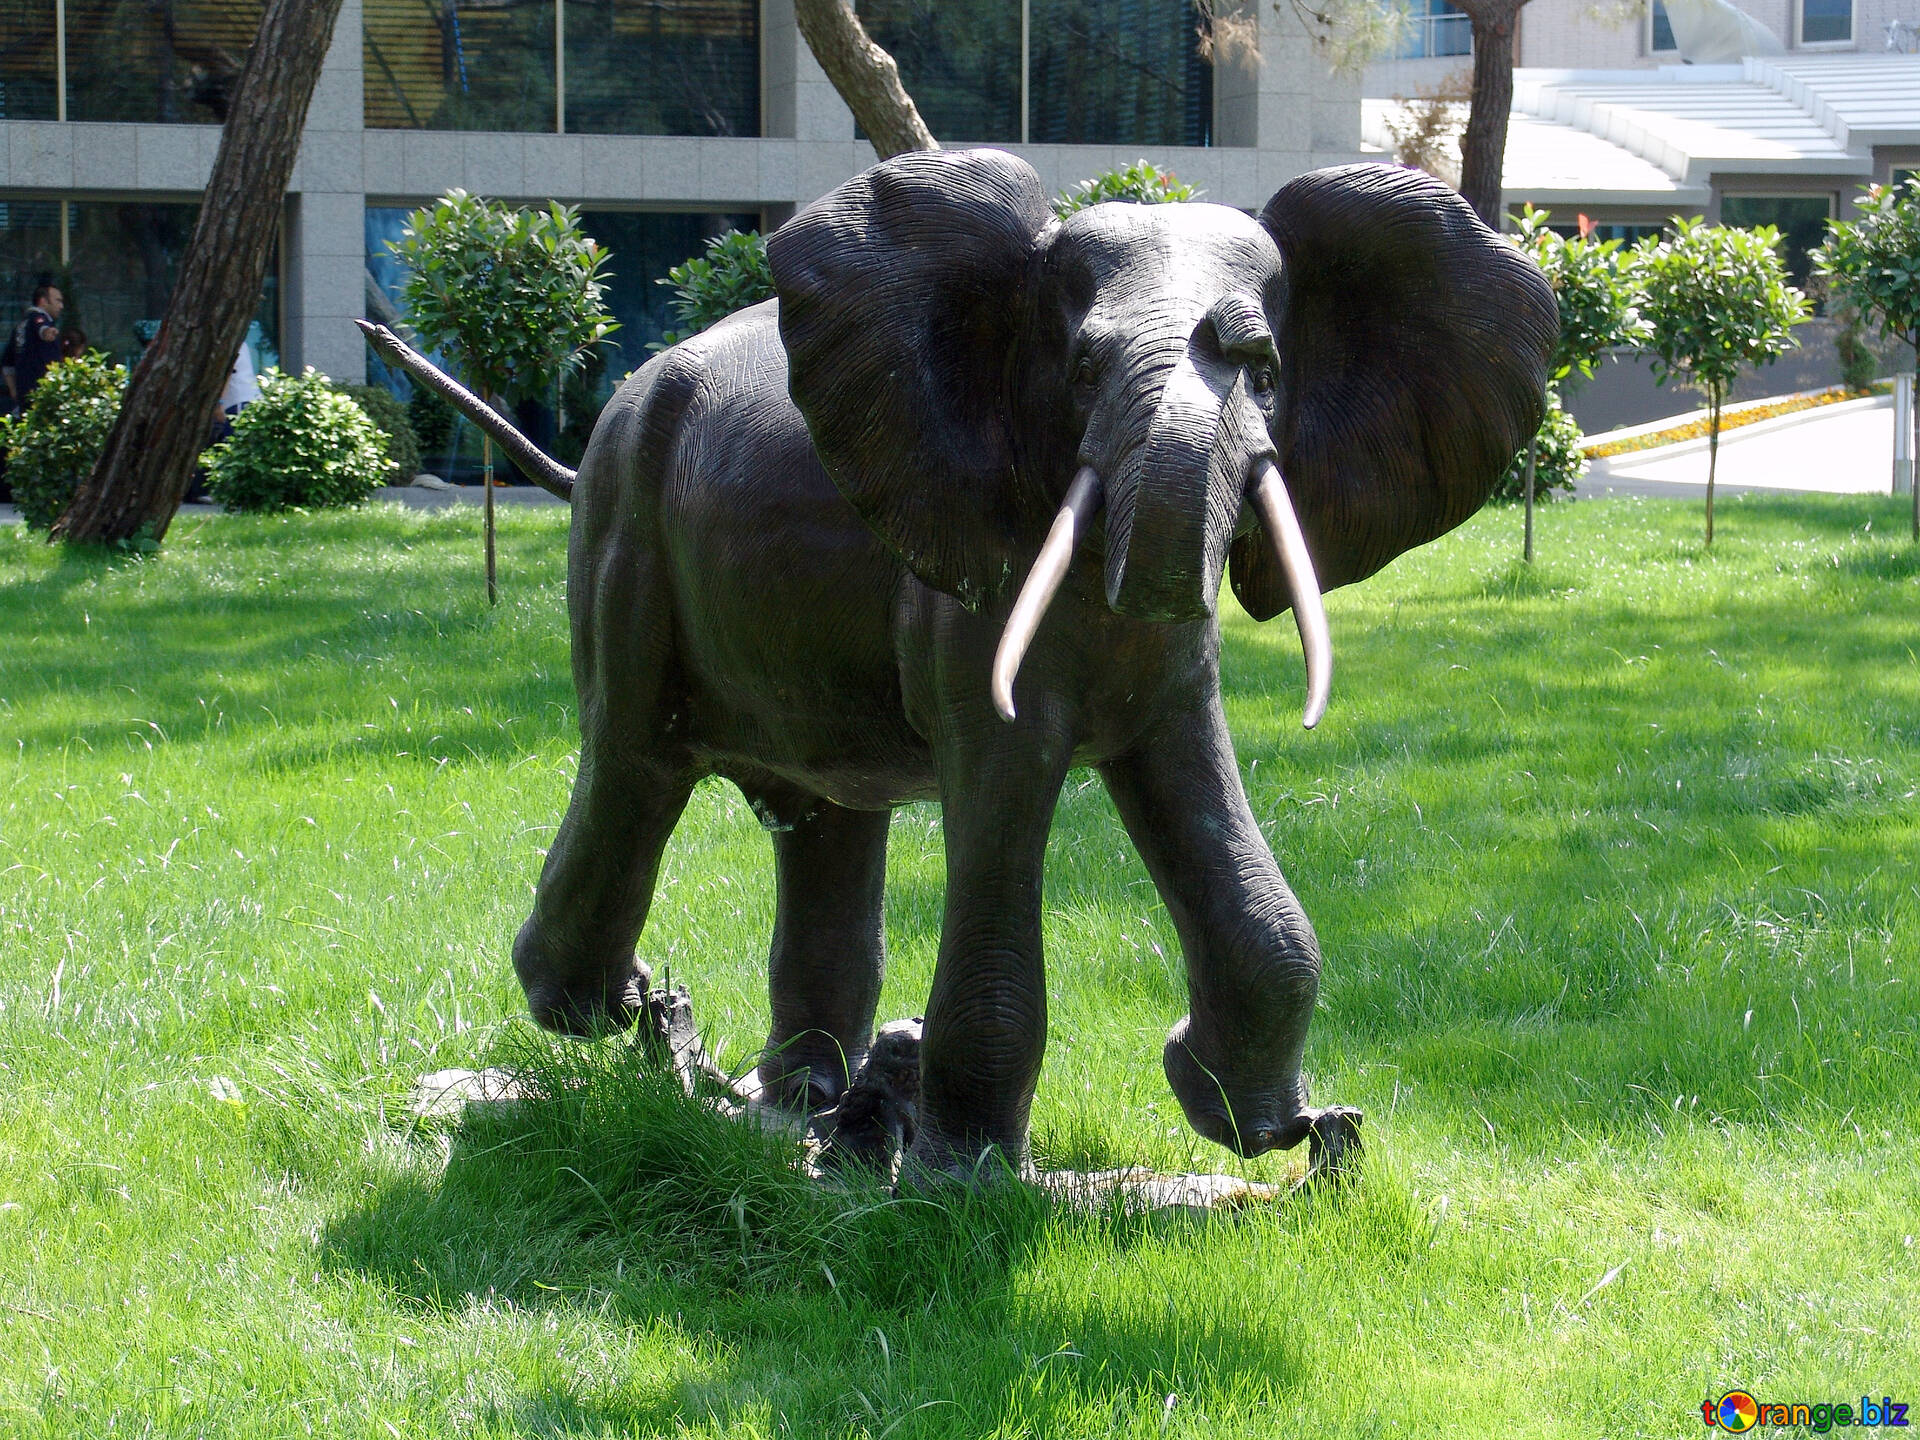 Download Free Image Elephant . Garden Sculpture. In HD Wallpaper Size 1920px